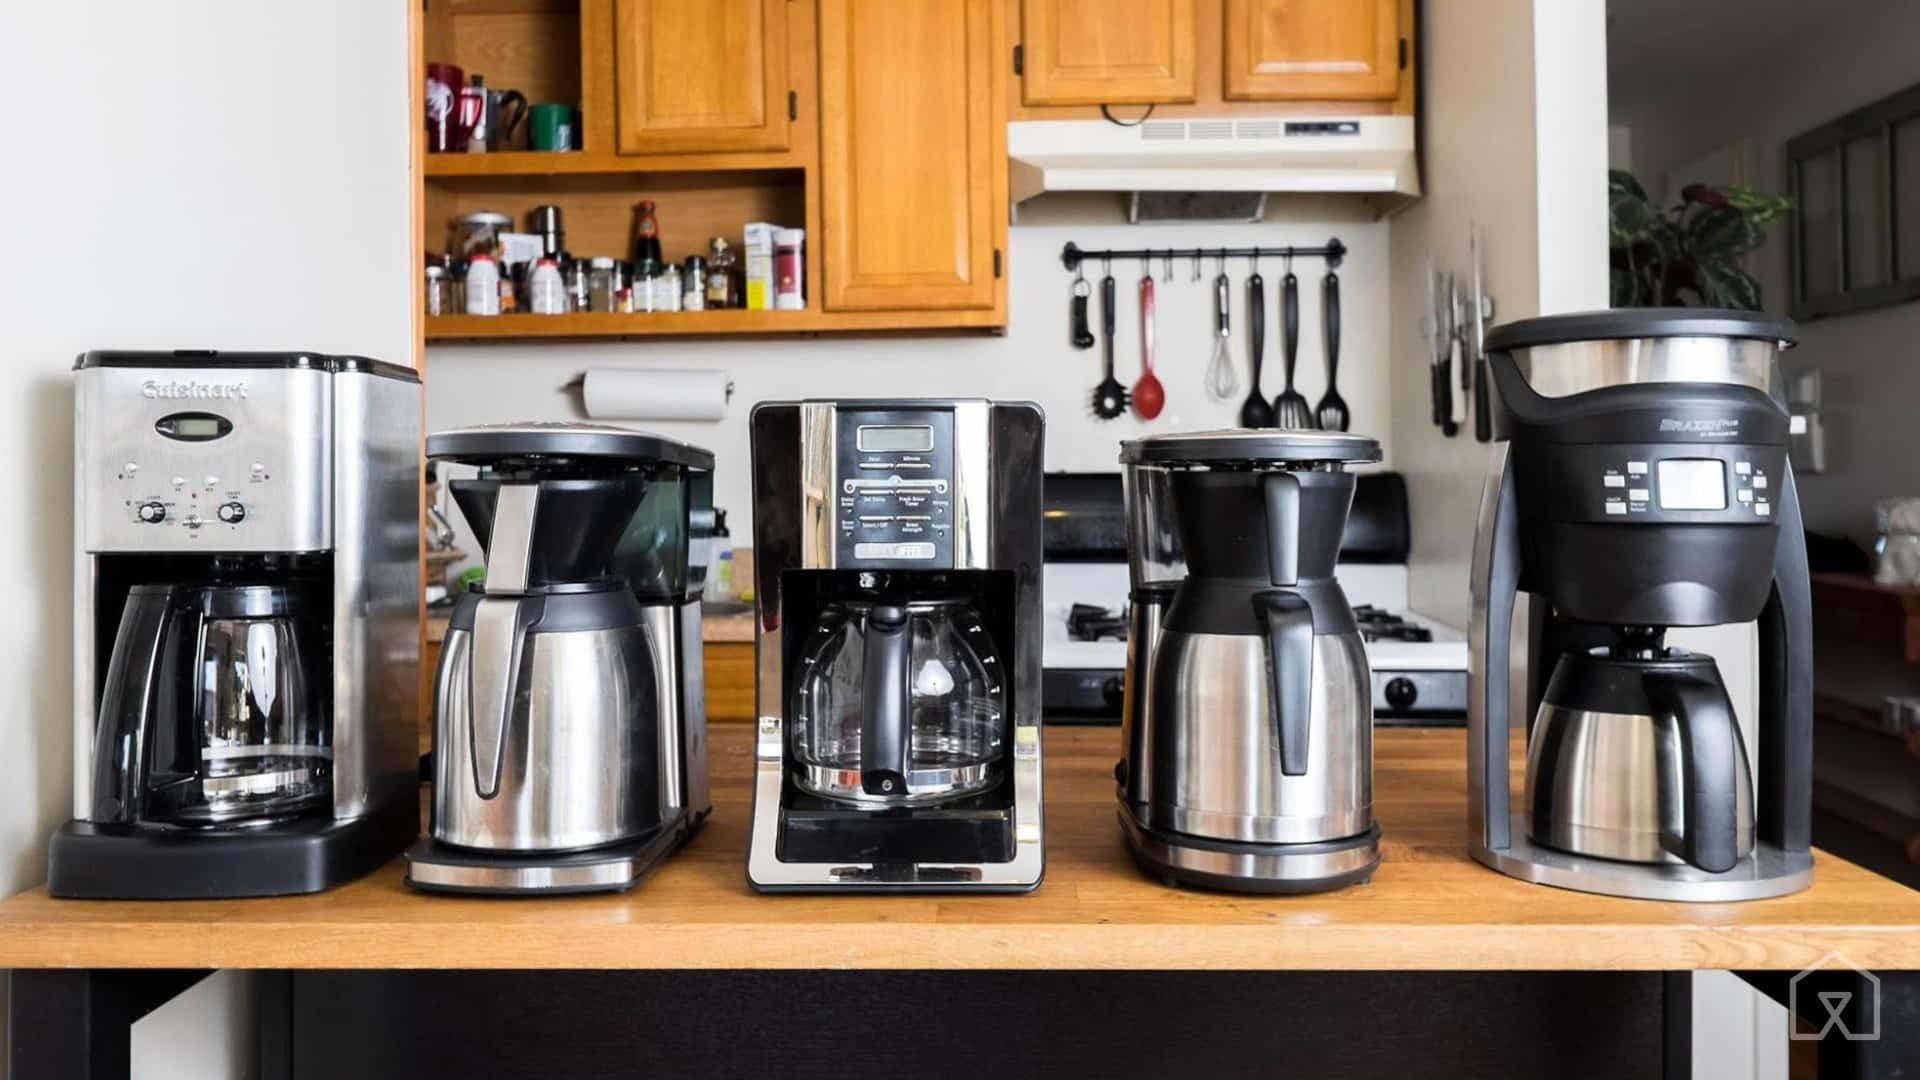 Best Coffee Makers With Grinder 2019 - SEEK BEST